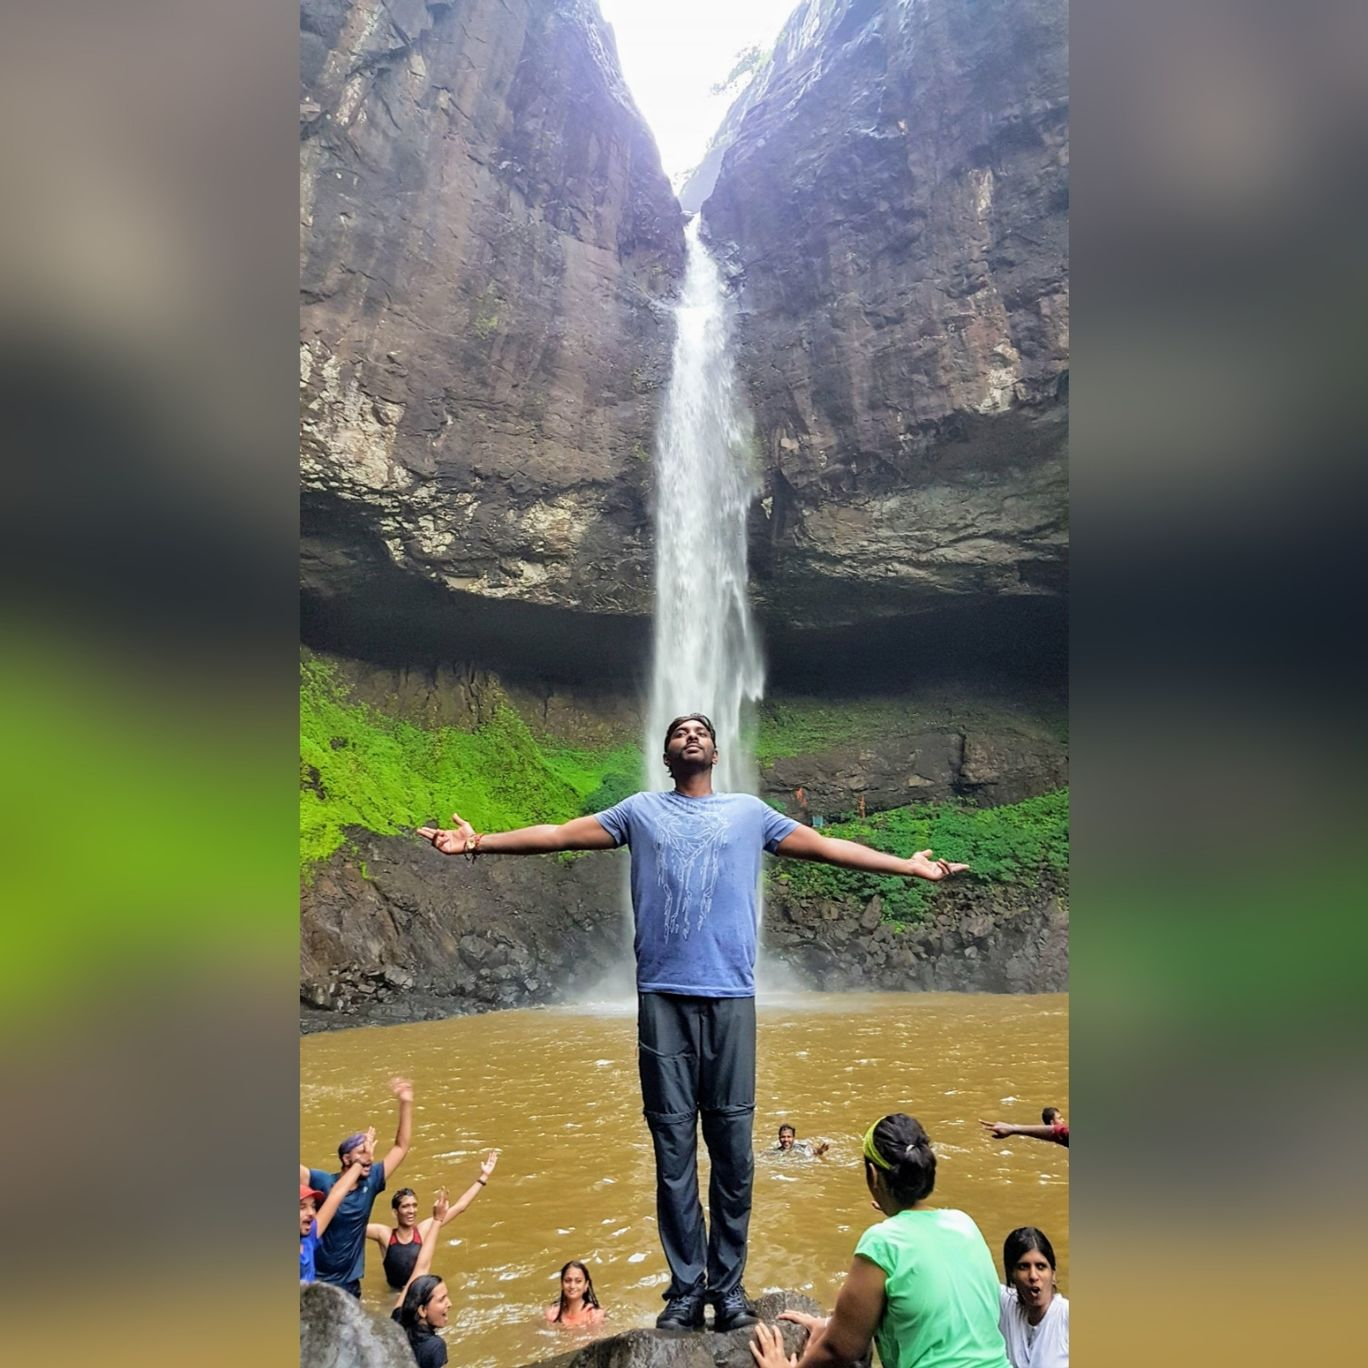 Photo of Devkund Waterfall By Trivikram Sarath